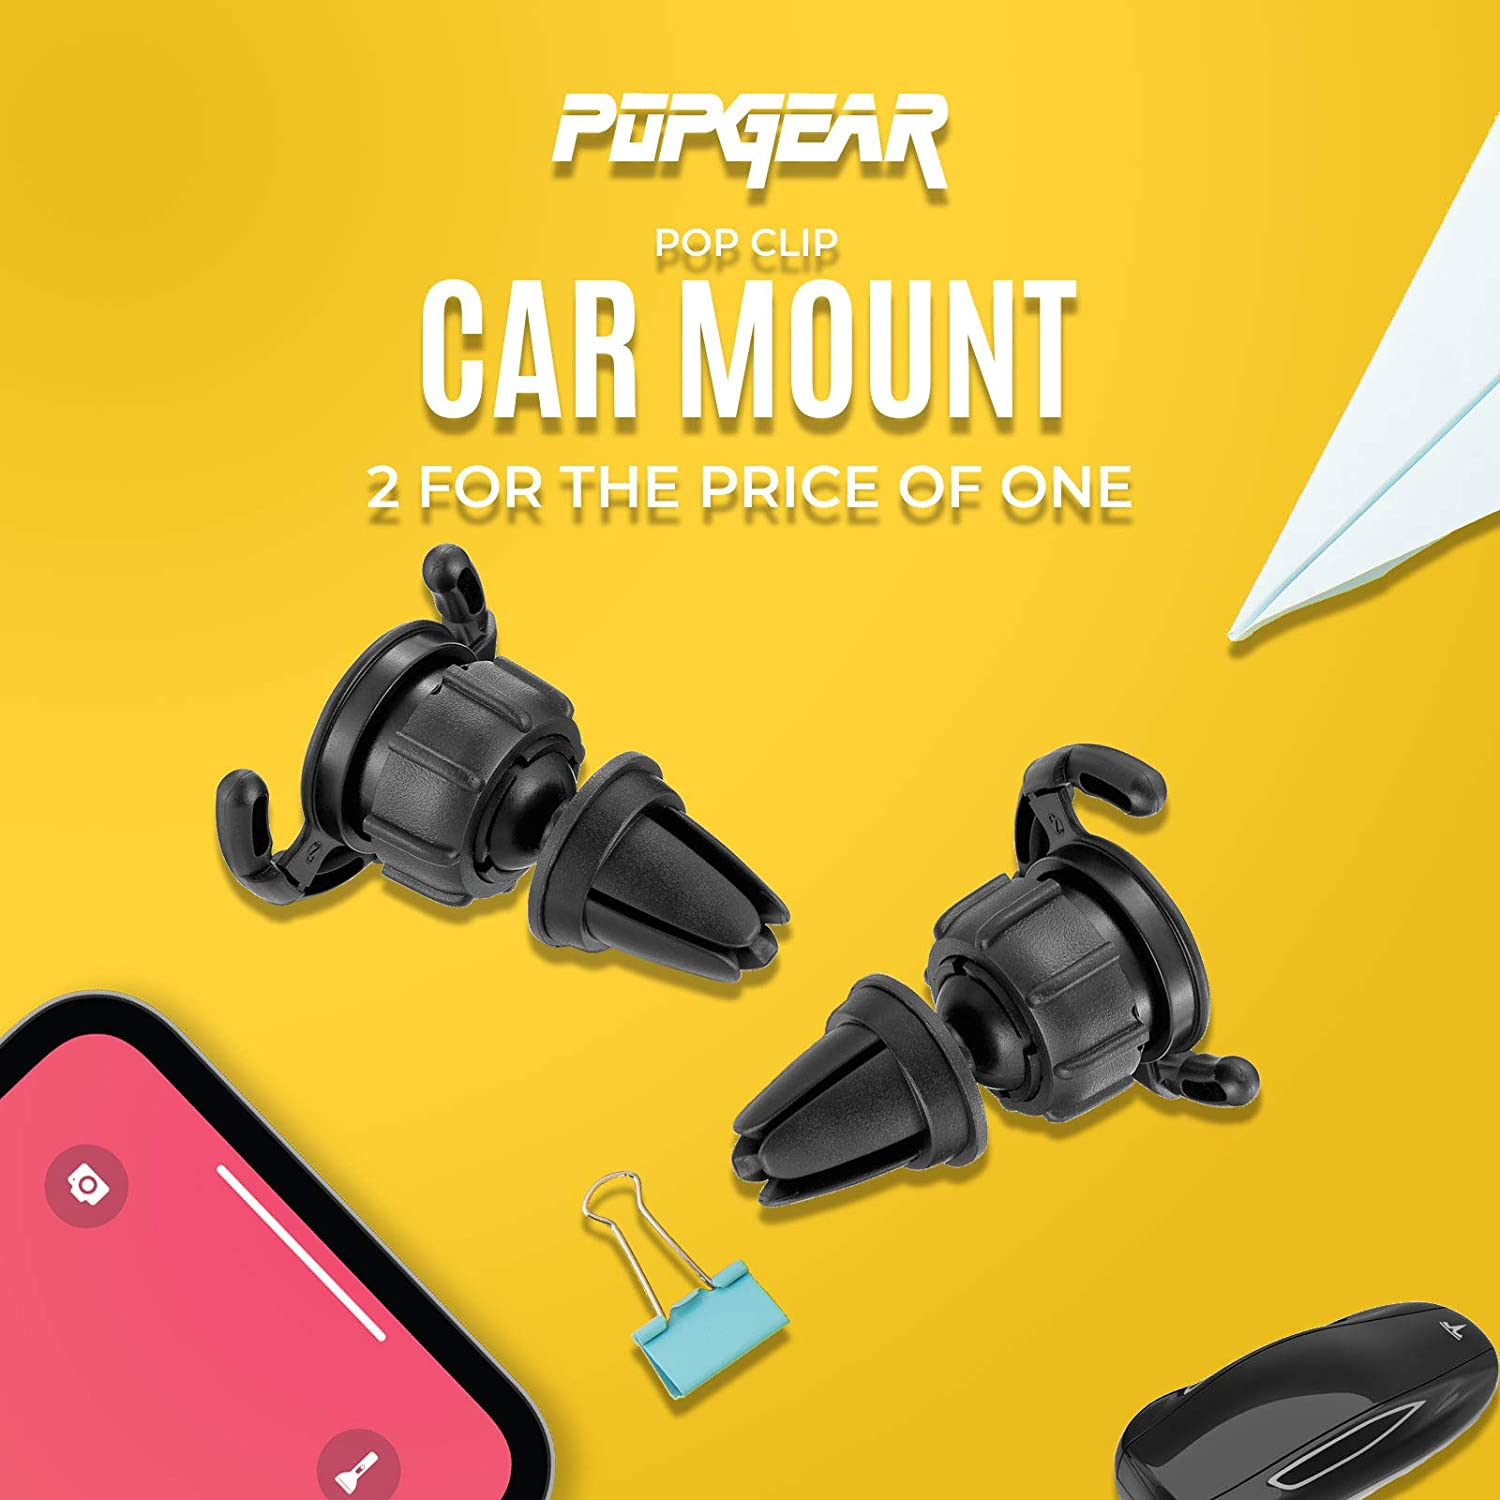 Sturdy Mount with 360 Degrees Grip /& Lock for GPS Navigation Air Vent Clip Designed for Android or iPhone with Pop Out Clip 2 Pack PopGear Pop Clip Car Mount /& Holder for Cell Phone